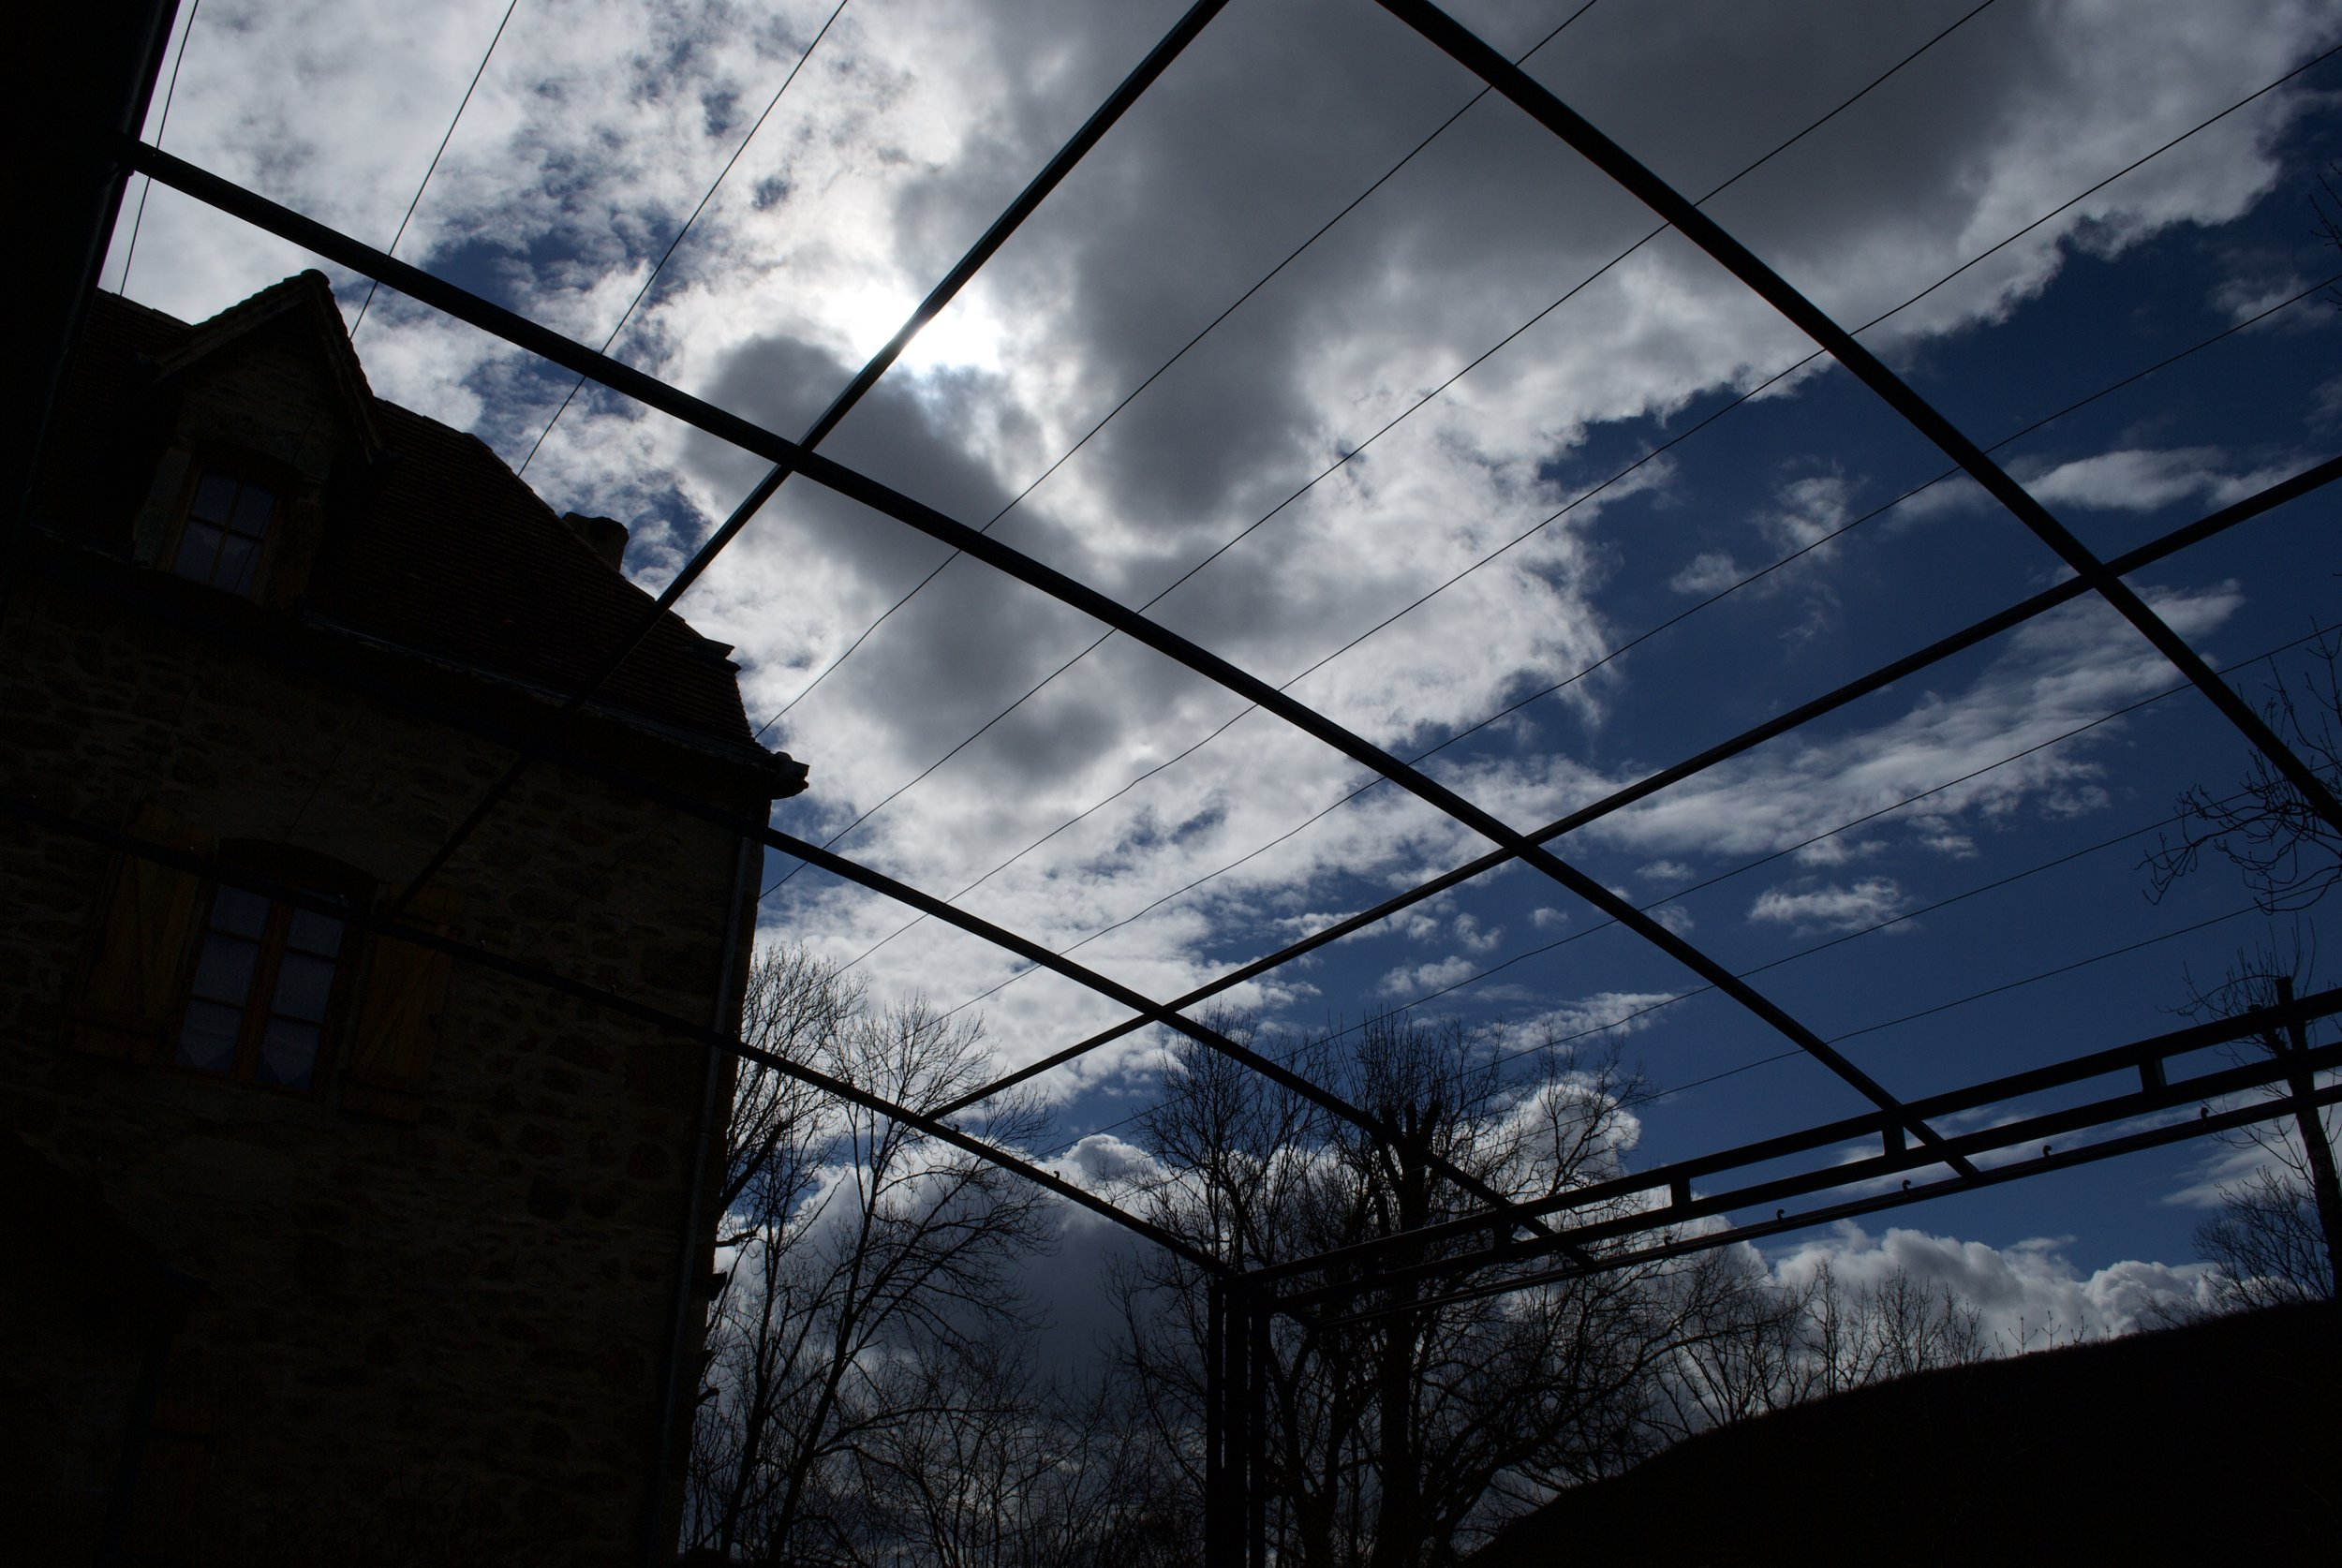 A view of the winter sky through the curving roof of the skeleton framework of the same pergola.